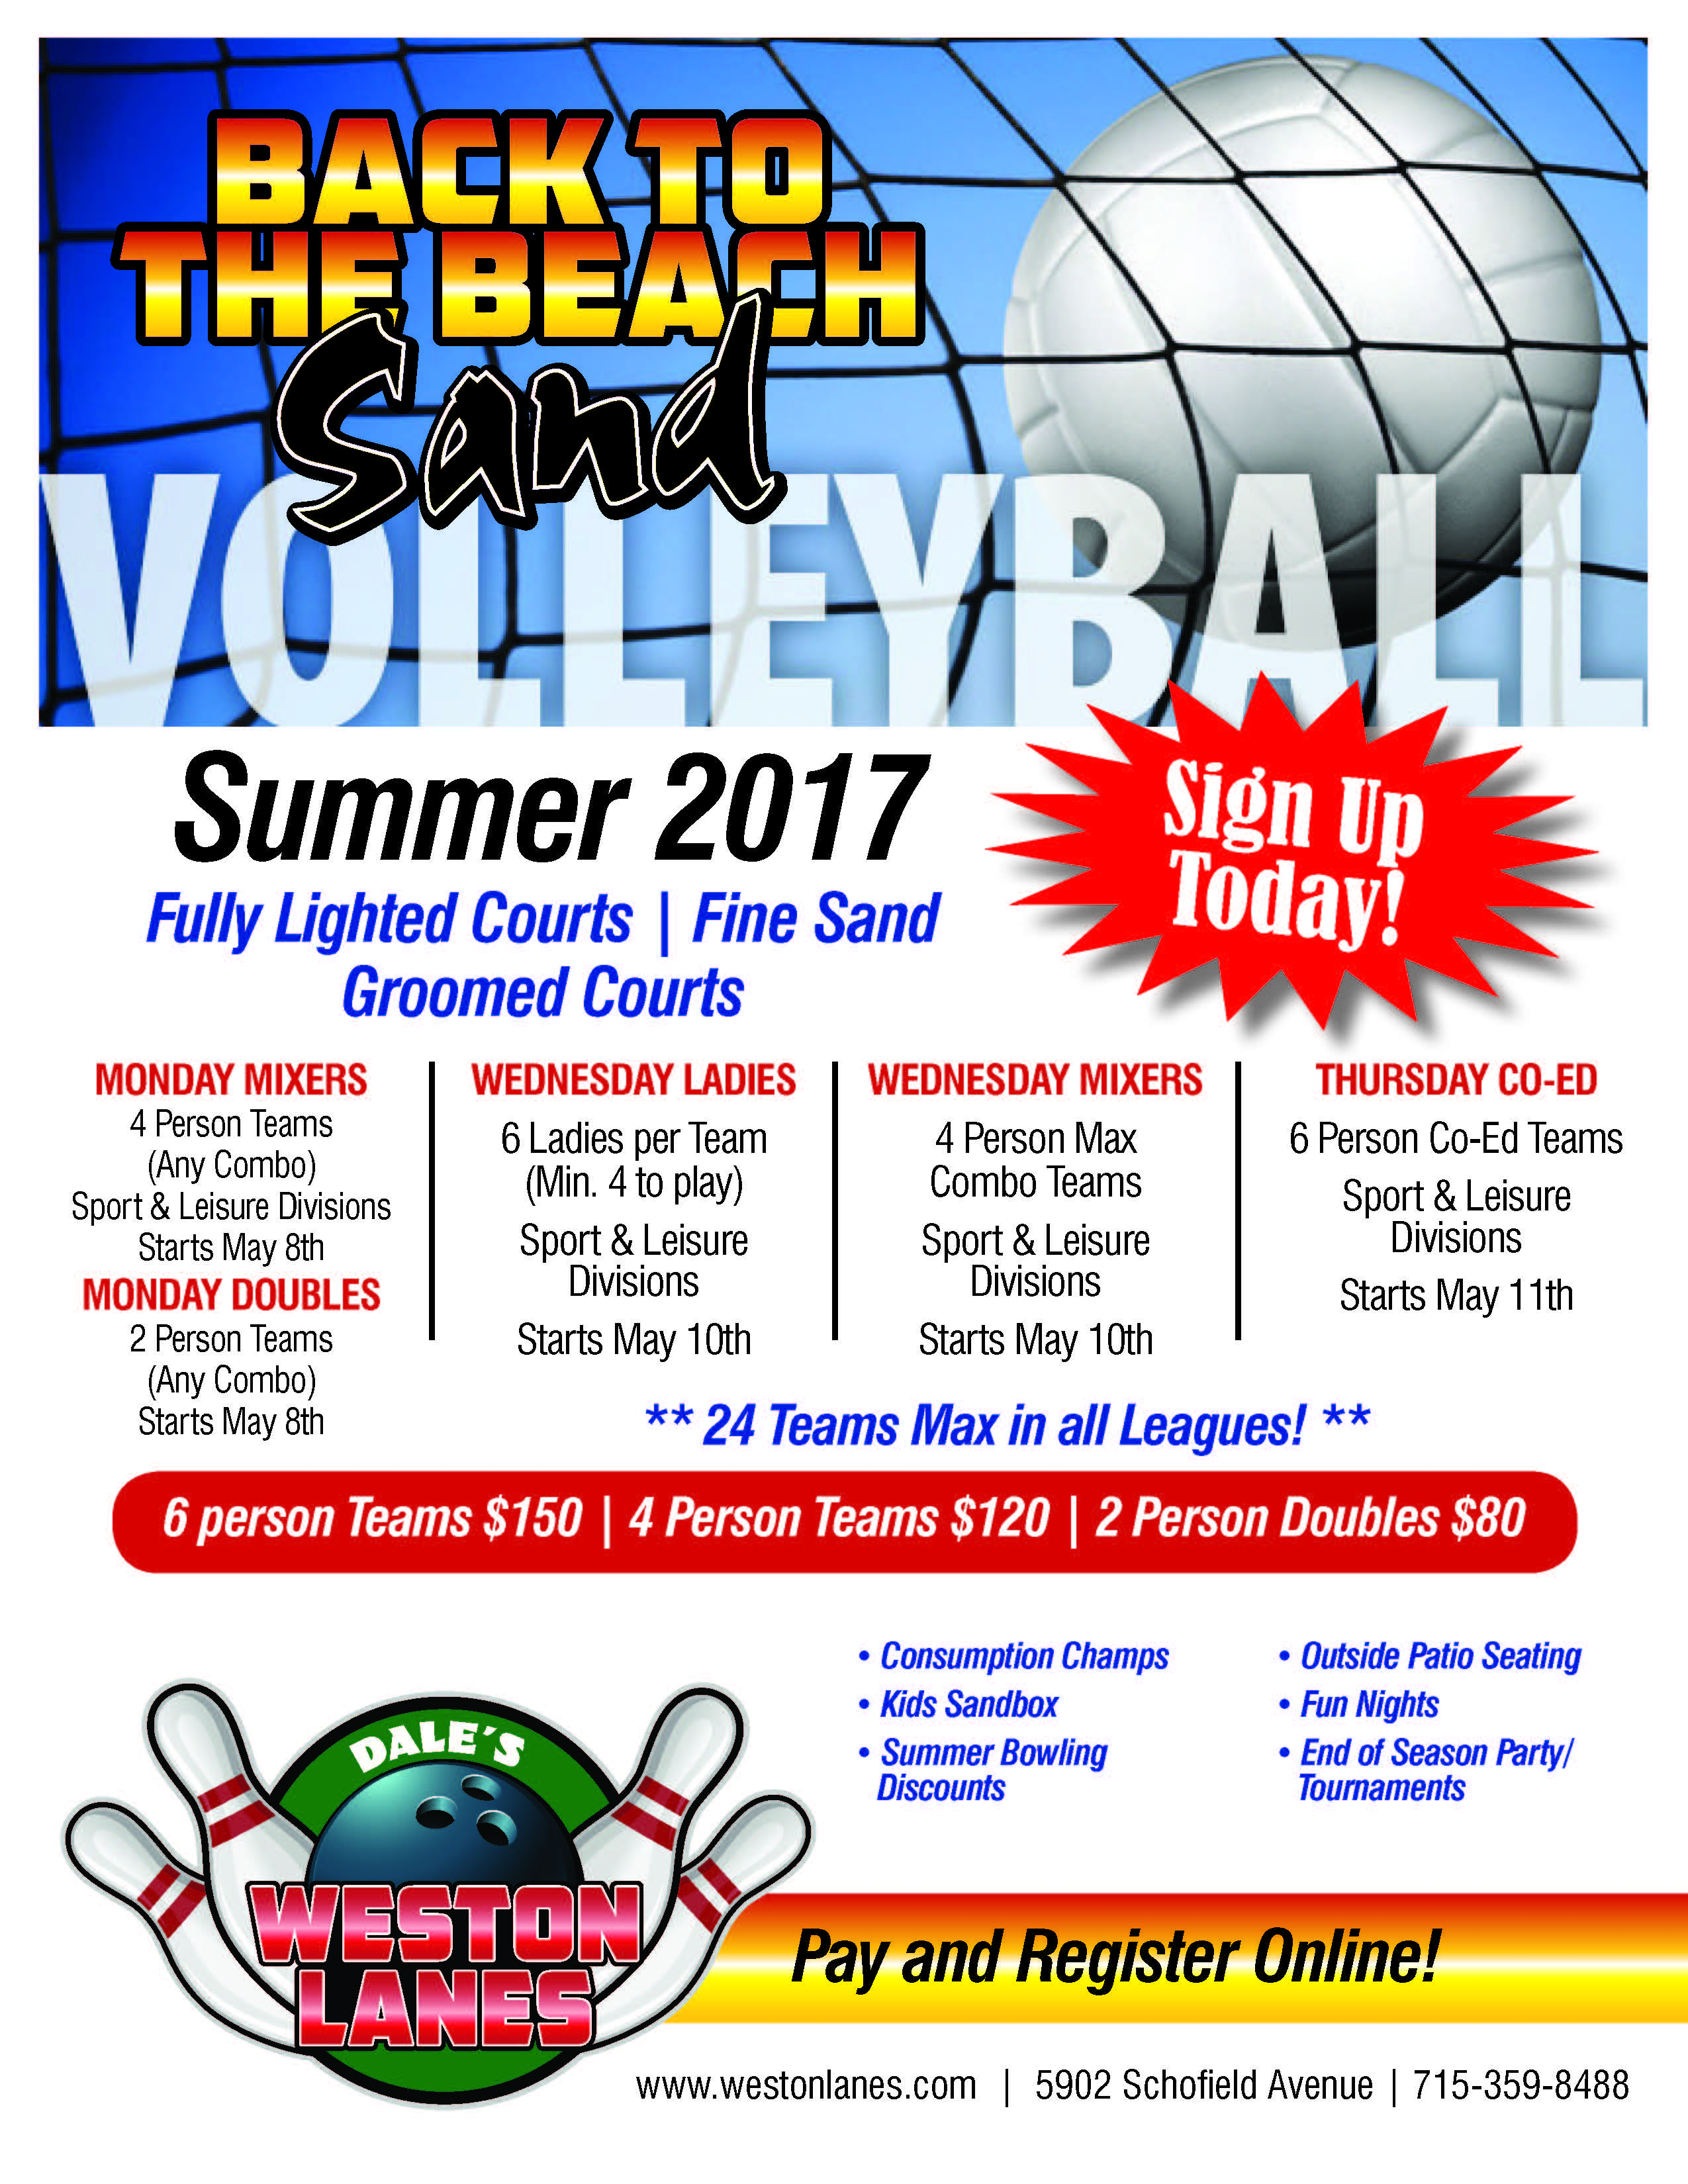 Volleyball Leagues - Weston Lanes